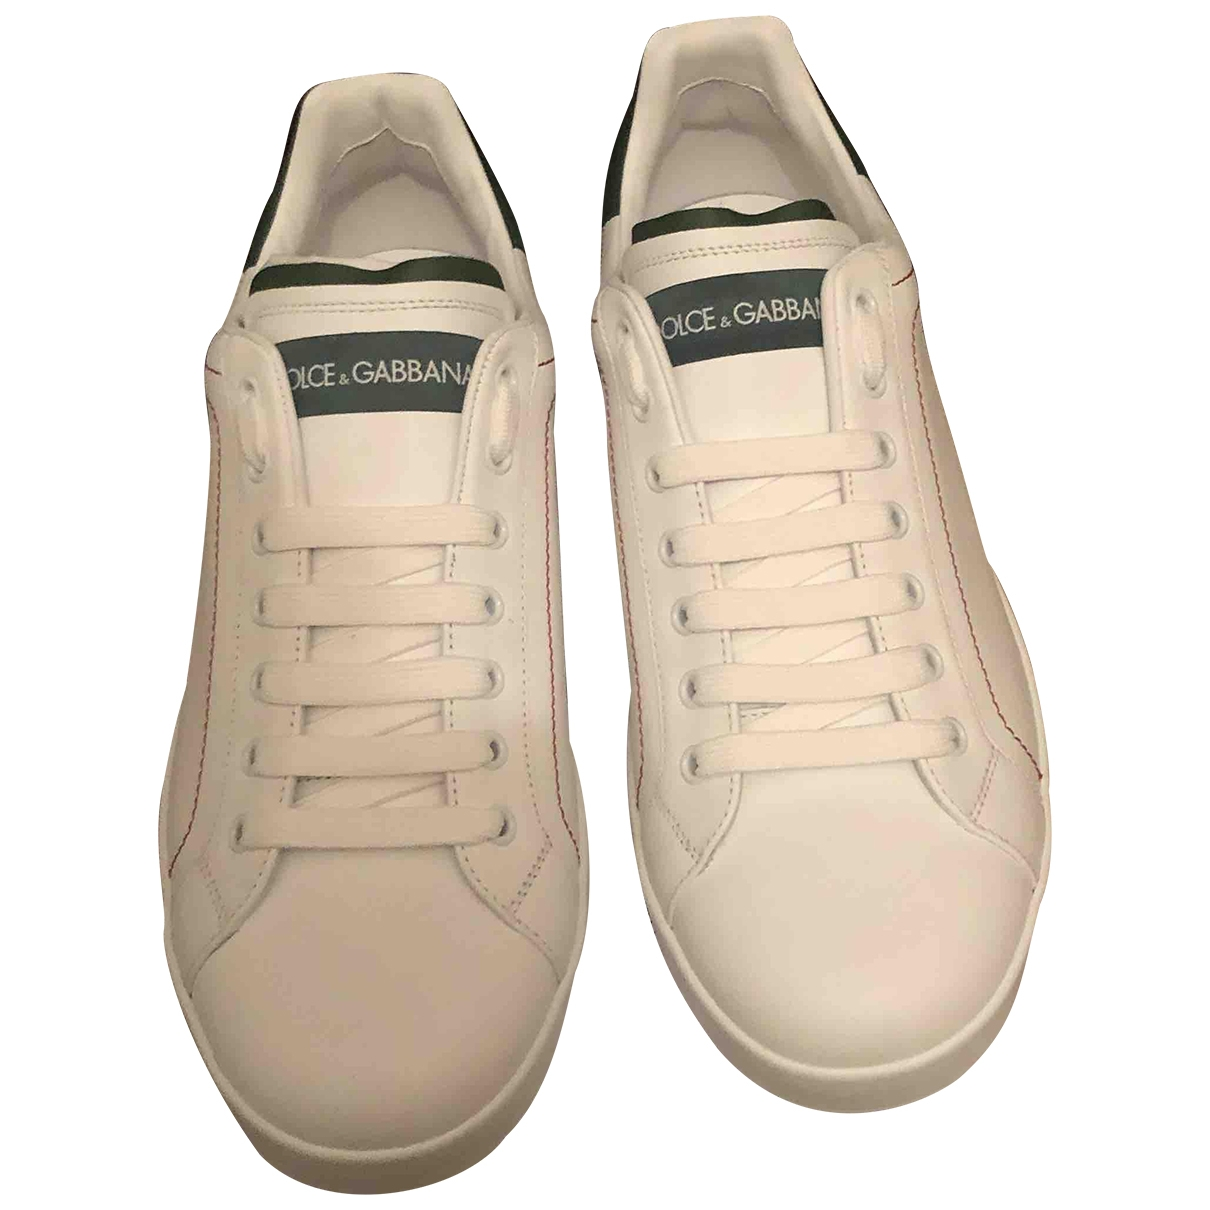 Dolce & Gabbana Portofino White Leather Trainers for Men 44 EU